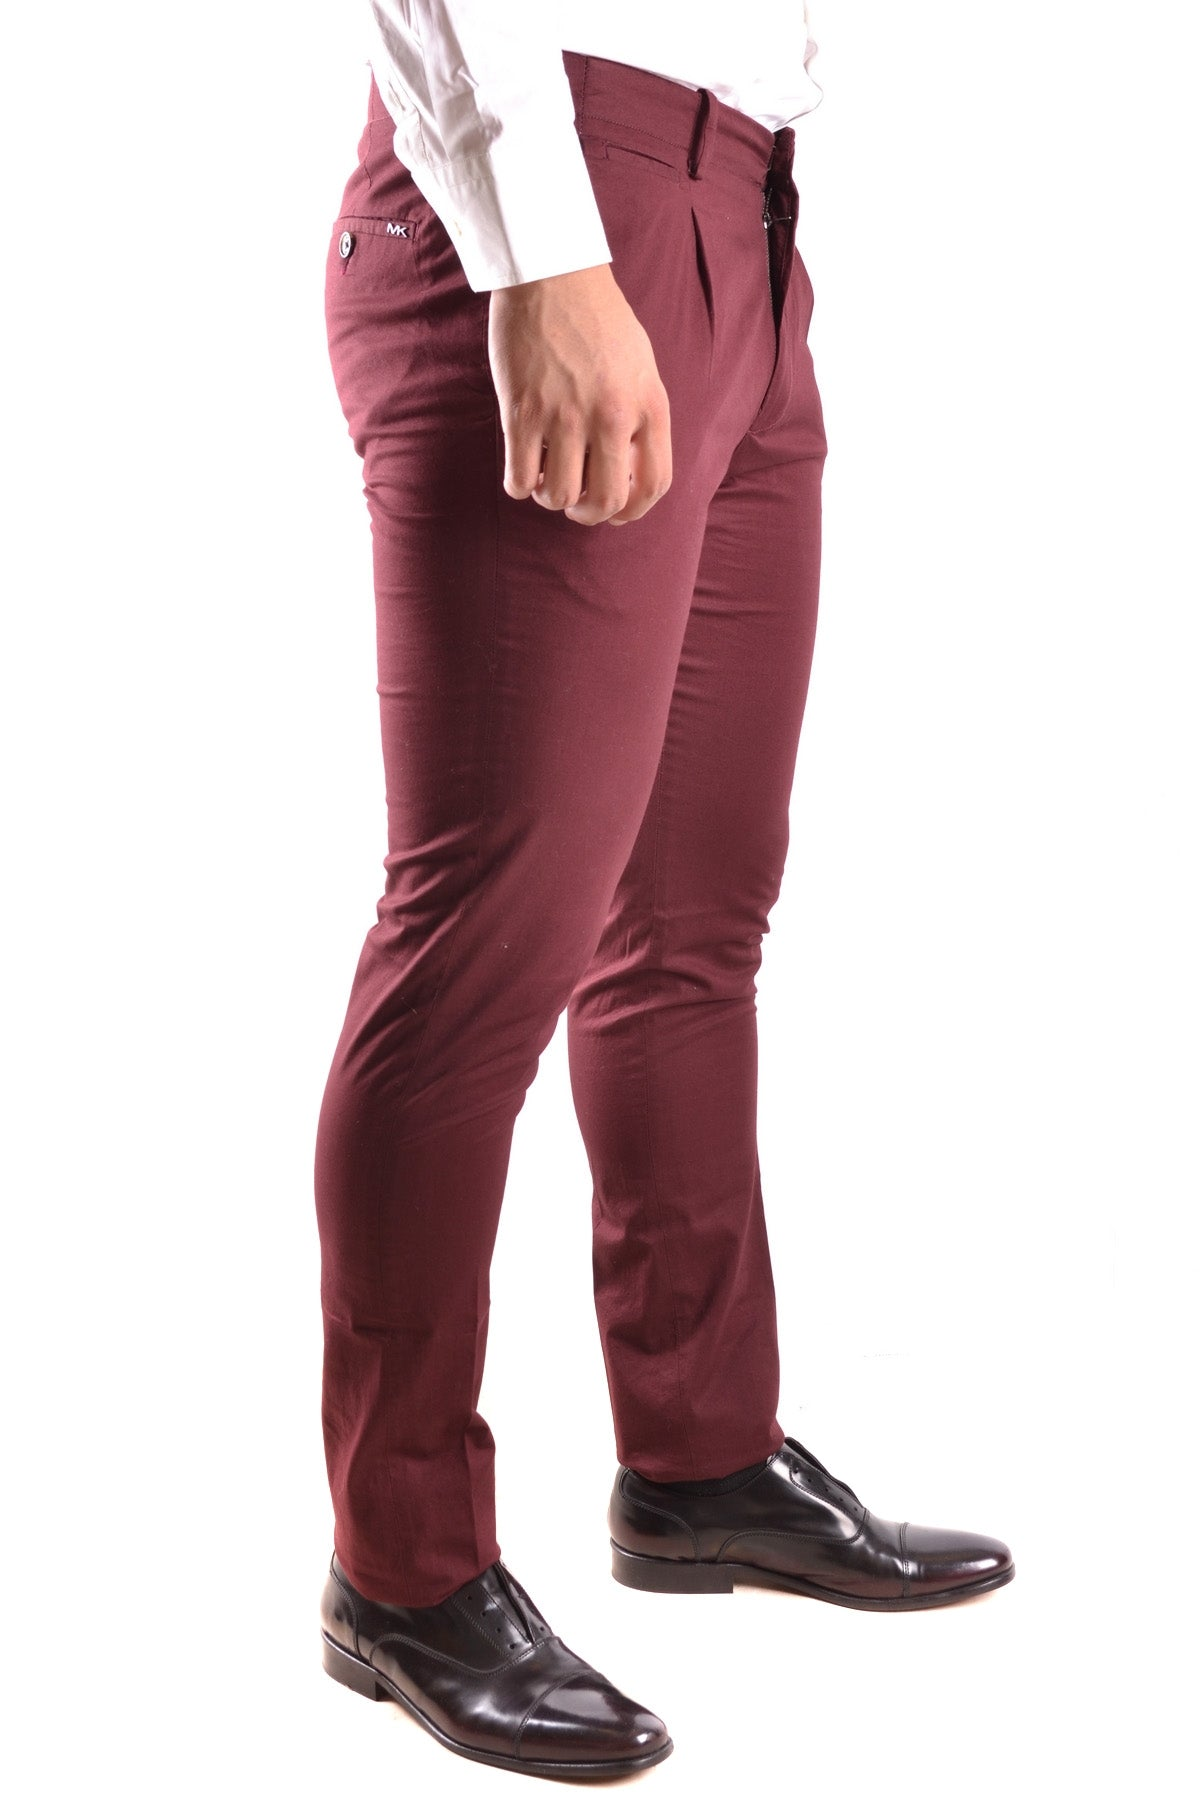 Trousers Michael Kors-Trousers - MAN-Product Details Terms: New With LabelYear: 2017Main Color: BurgundySeason: Spring / SummerMade In: ChinaSize: UsGender: ManClothing Type: TrousersComposition: Cotton 99%, Elastane 1%-Keyomi-Sook